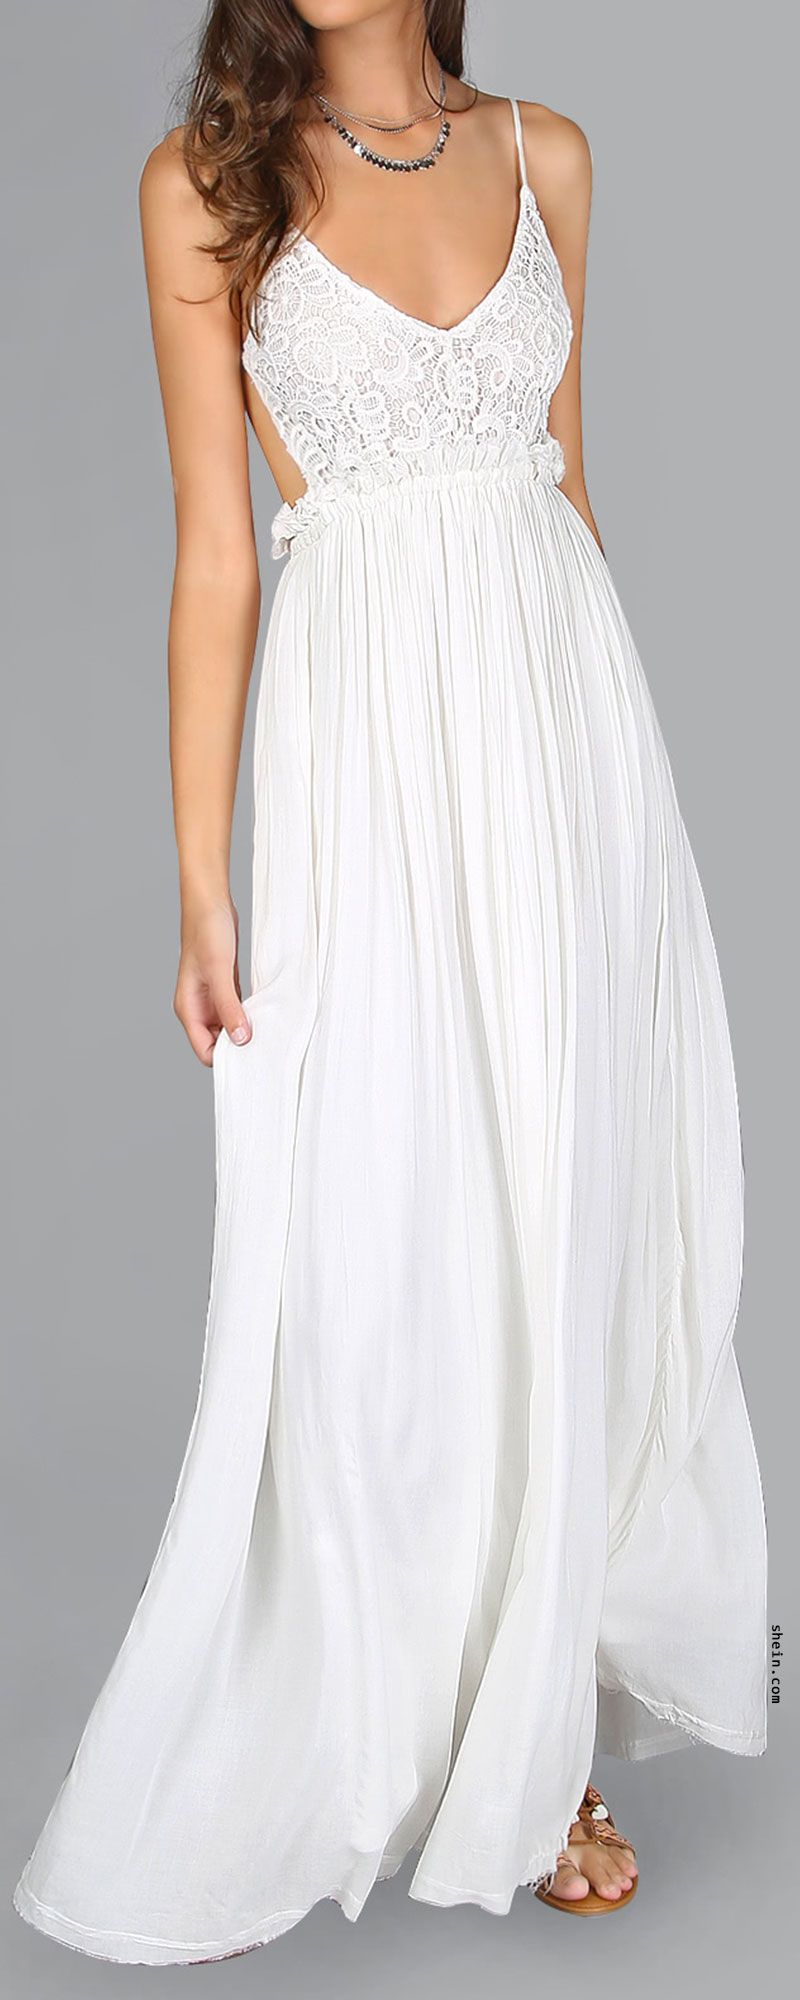 Lace Overlay Backless Pleated Maxi Dress | Clothing | Pinterest ...